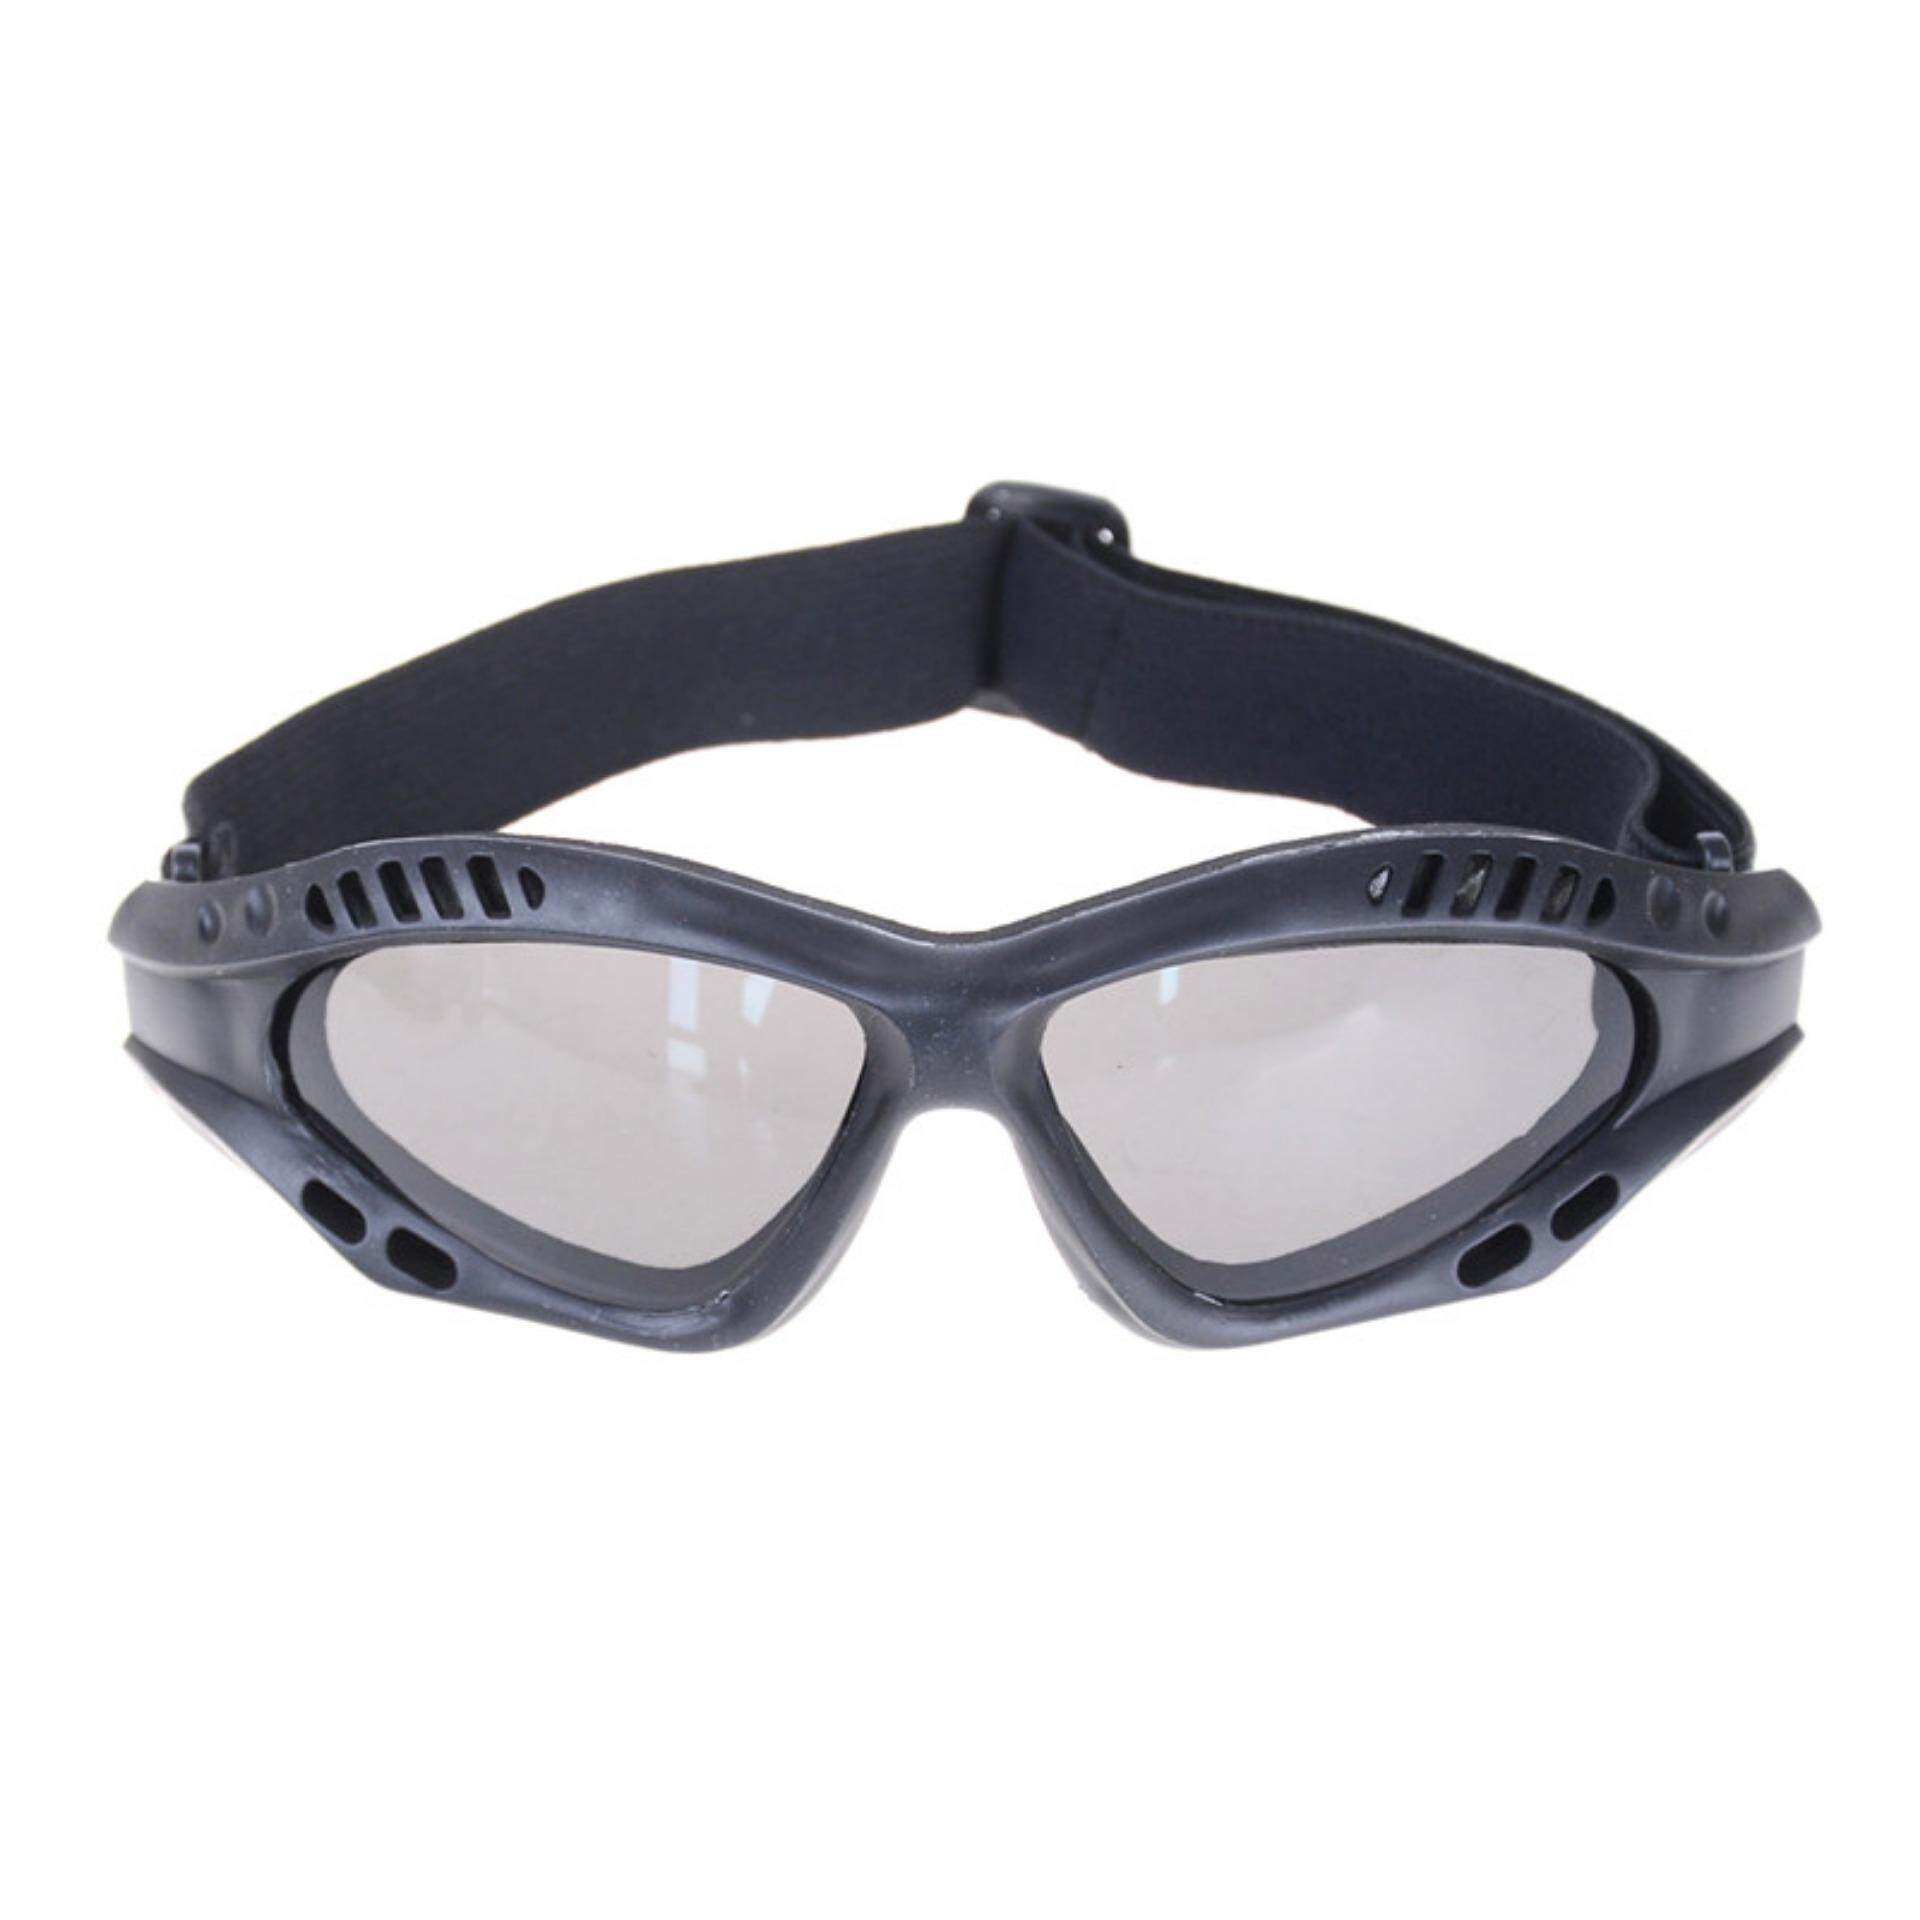 Protection Glasses Anti-Shock Windproof Glasses Dust Tactical Safety Glasses